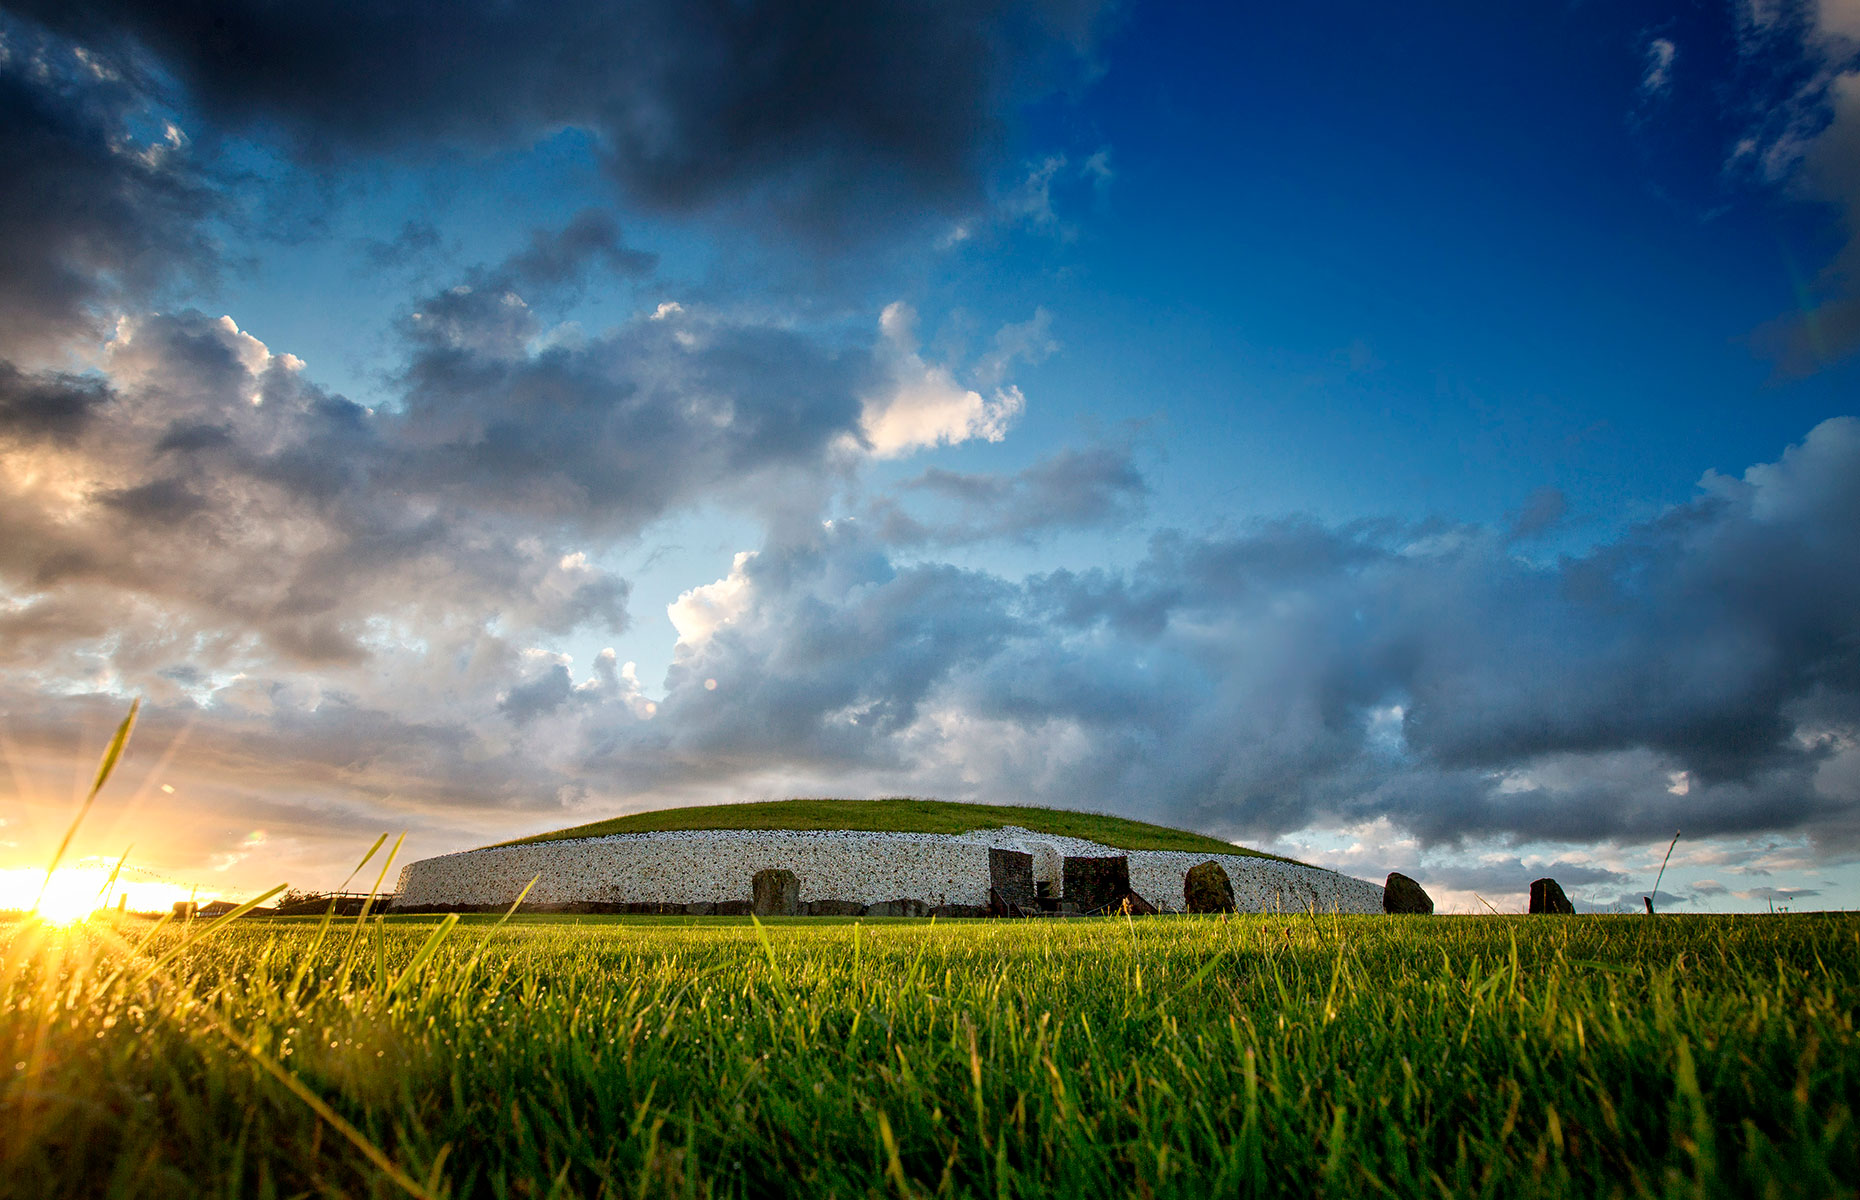 Newgrange monument is a tomb in the Boyne Valley, Ireland, pictured here at sunset